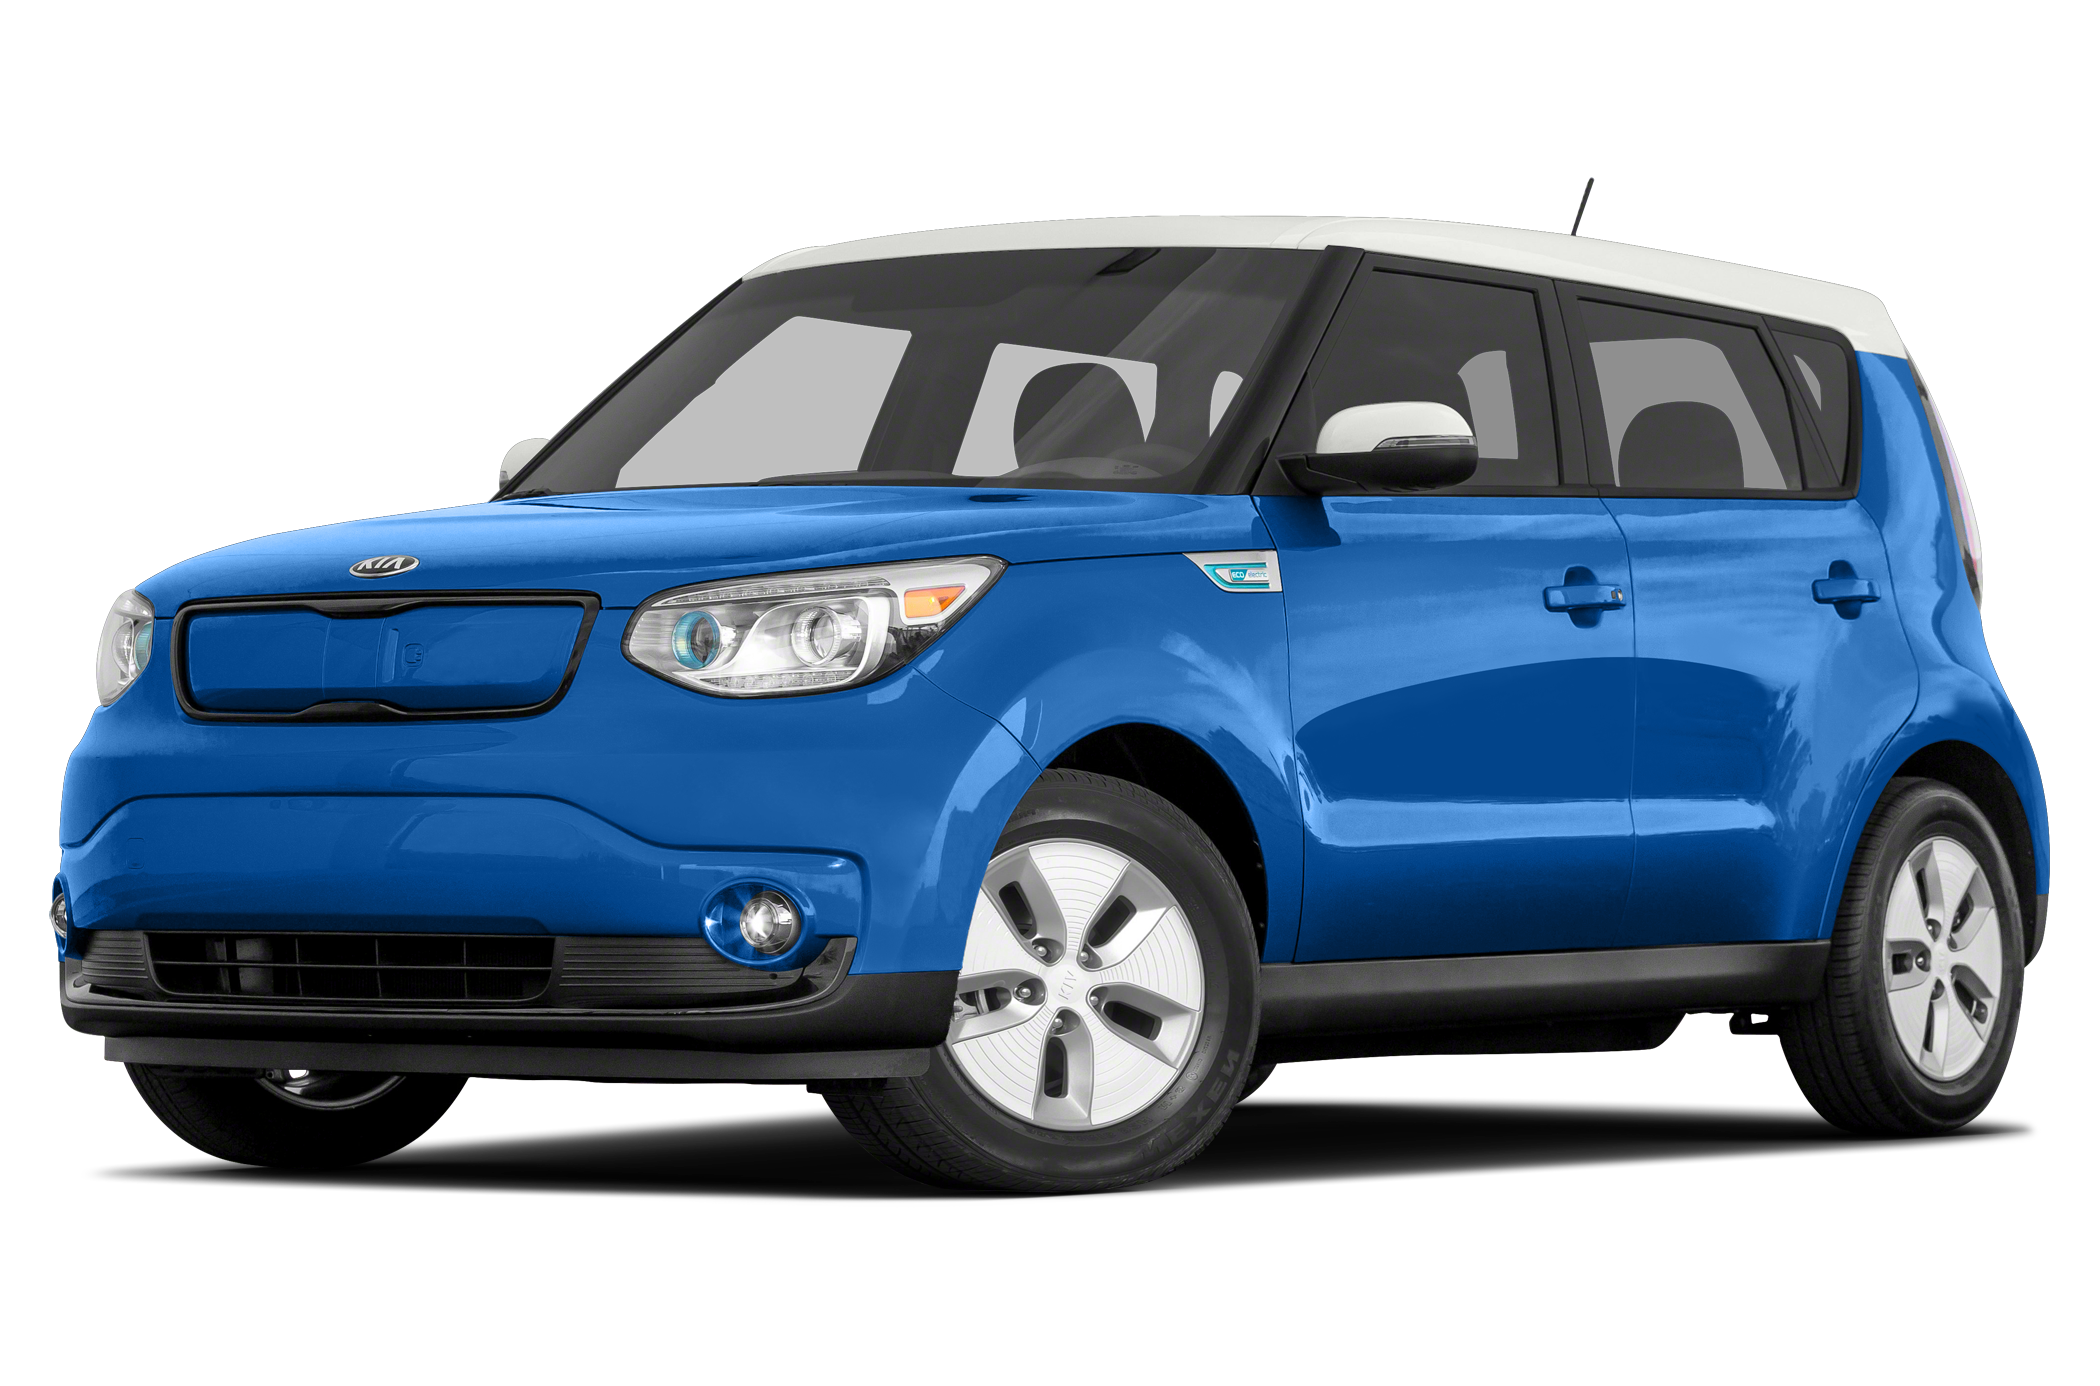 2012 Toyota Tundra Aftermarket Accessories Kia+Soul+Consumer+Reviews review no comment 2015 kia soul ev review ...